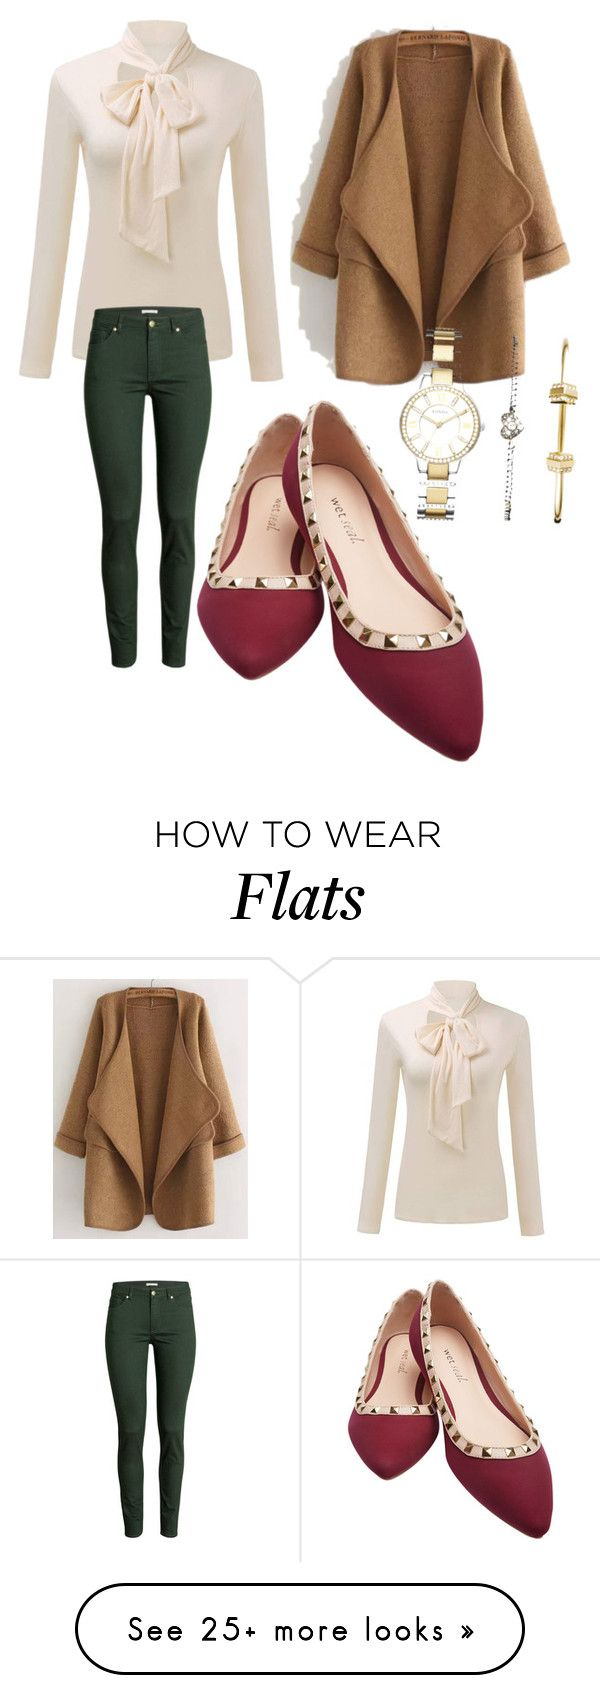 """""""Untitled #1"""" by maggiedust on Polyvore featuring Wet Seal, WithChic, H&M and FOSSIL"""